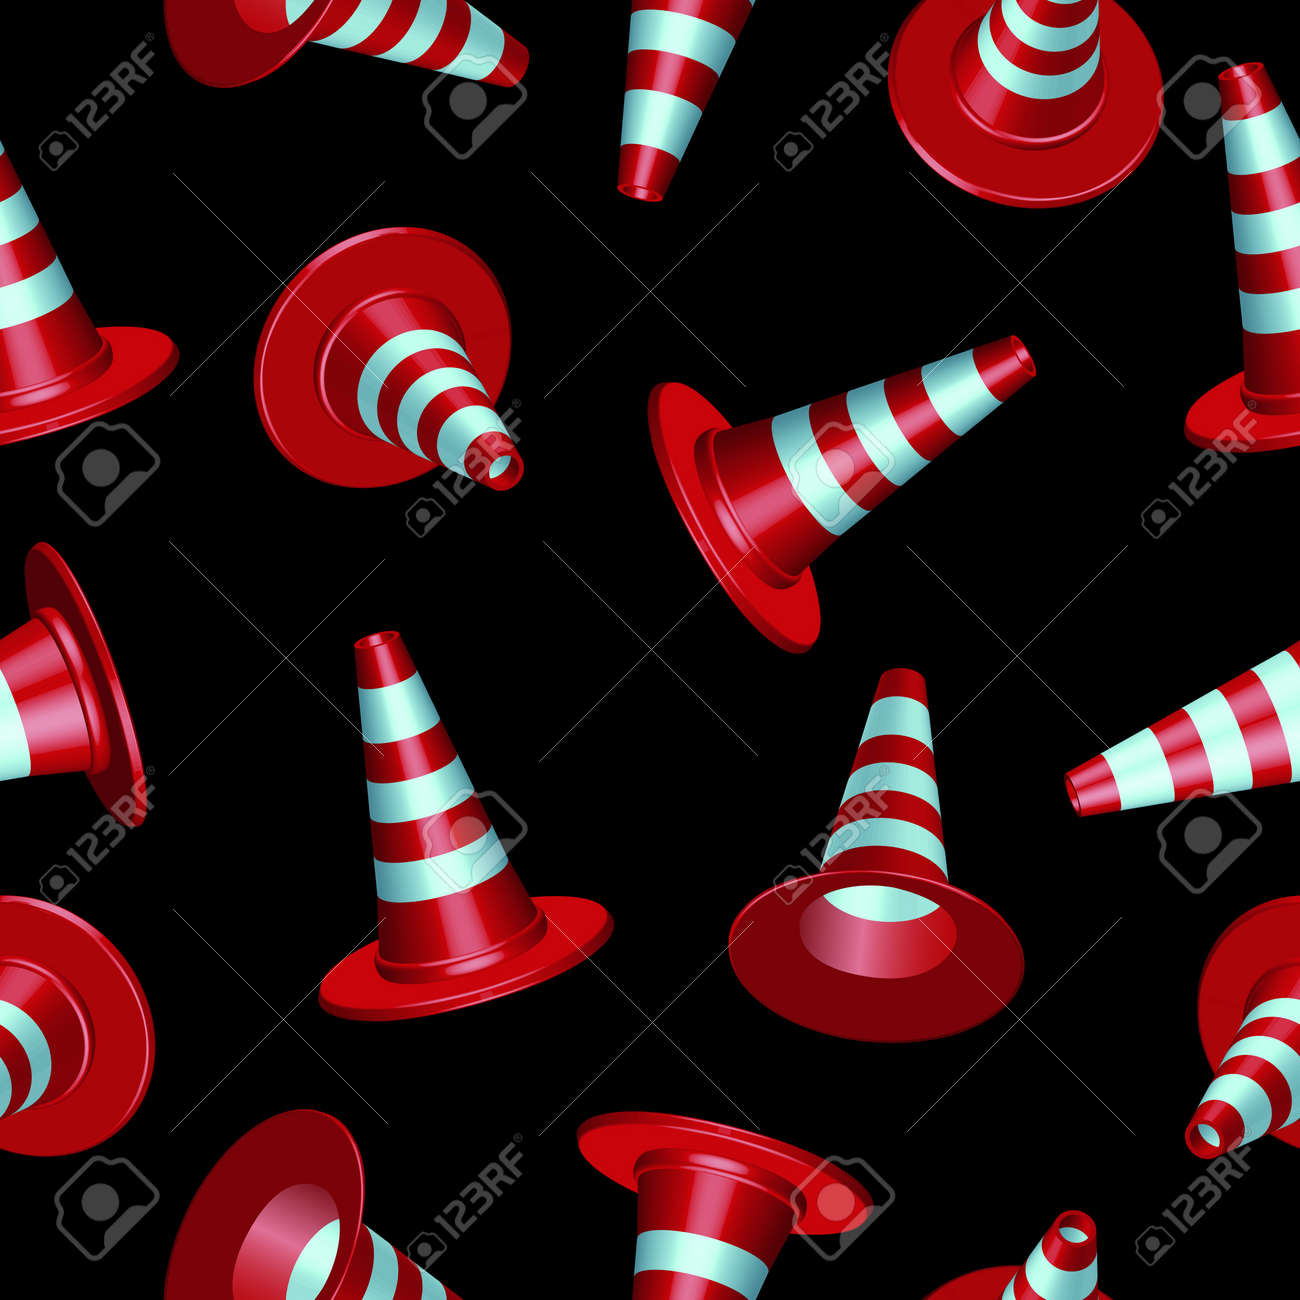 traffic cones with round base pattern against black background Stock Vector - 12485759